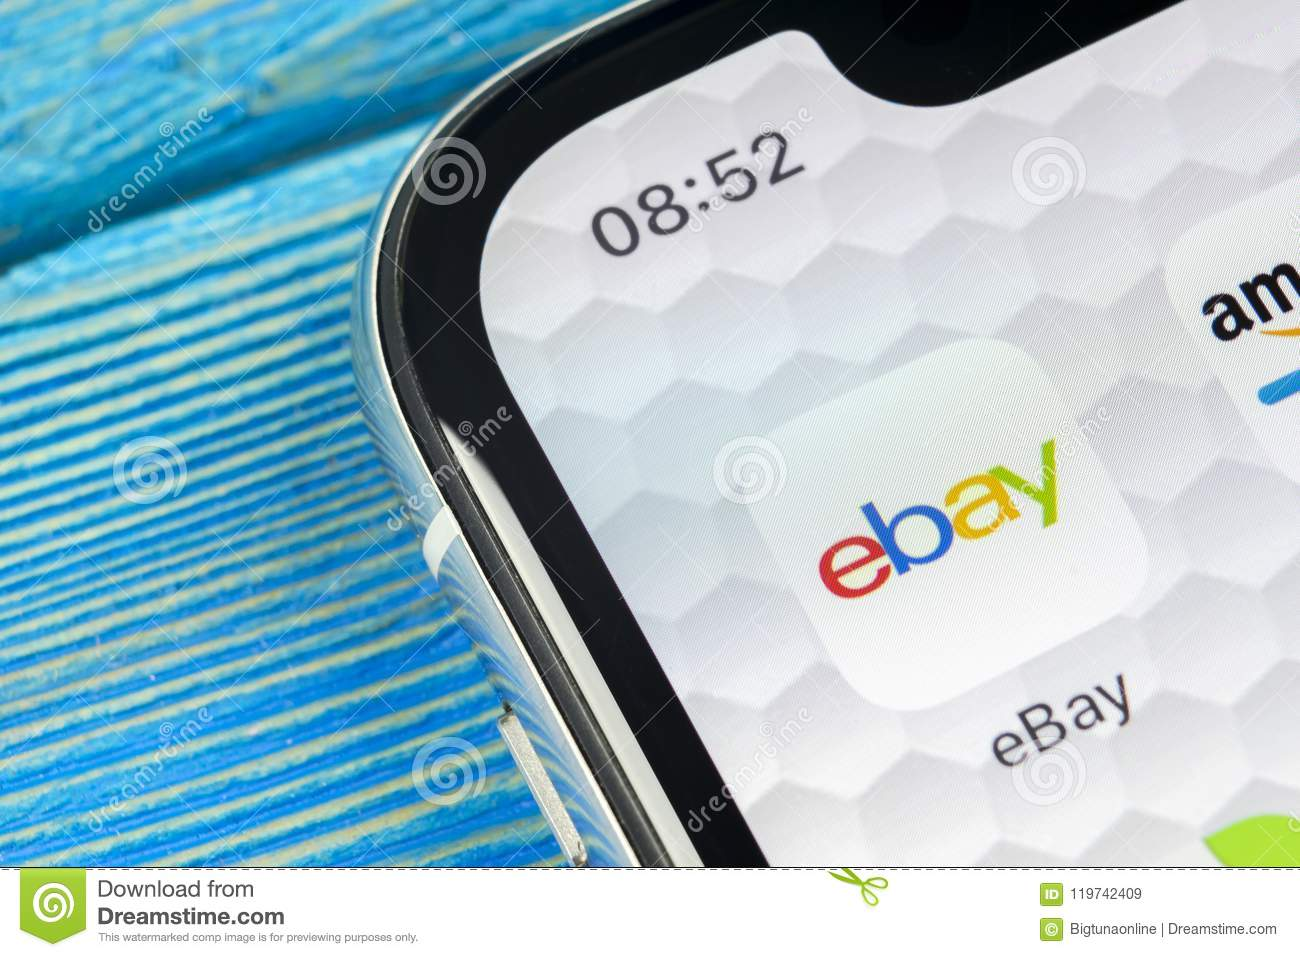 Ebay Application Icon On Apple Iphone X Screen Close Up Ebay App Icon Ebay Com Is Largest Online Auction And Shopping Websites Editorial Stock Image Image Of Application Multinational 119742409